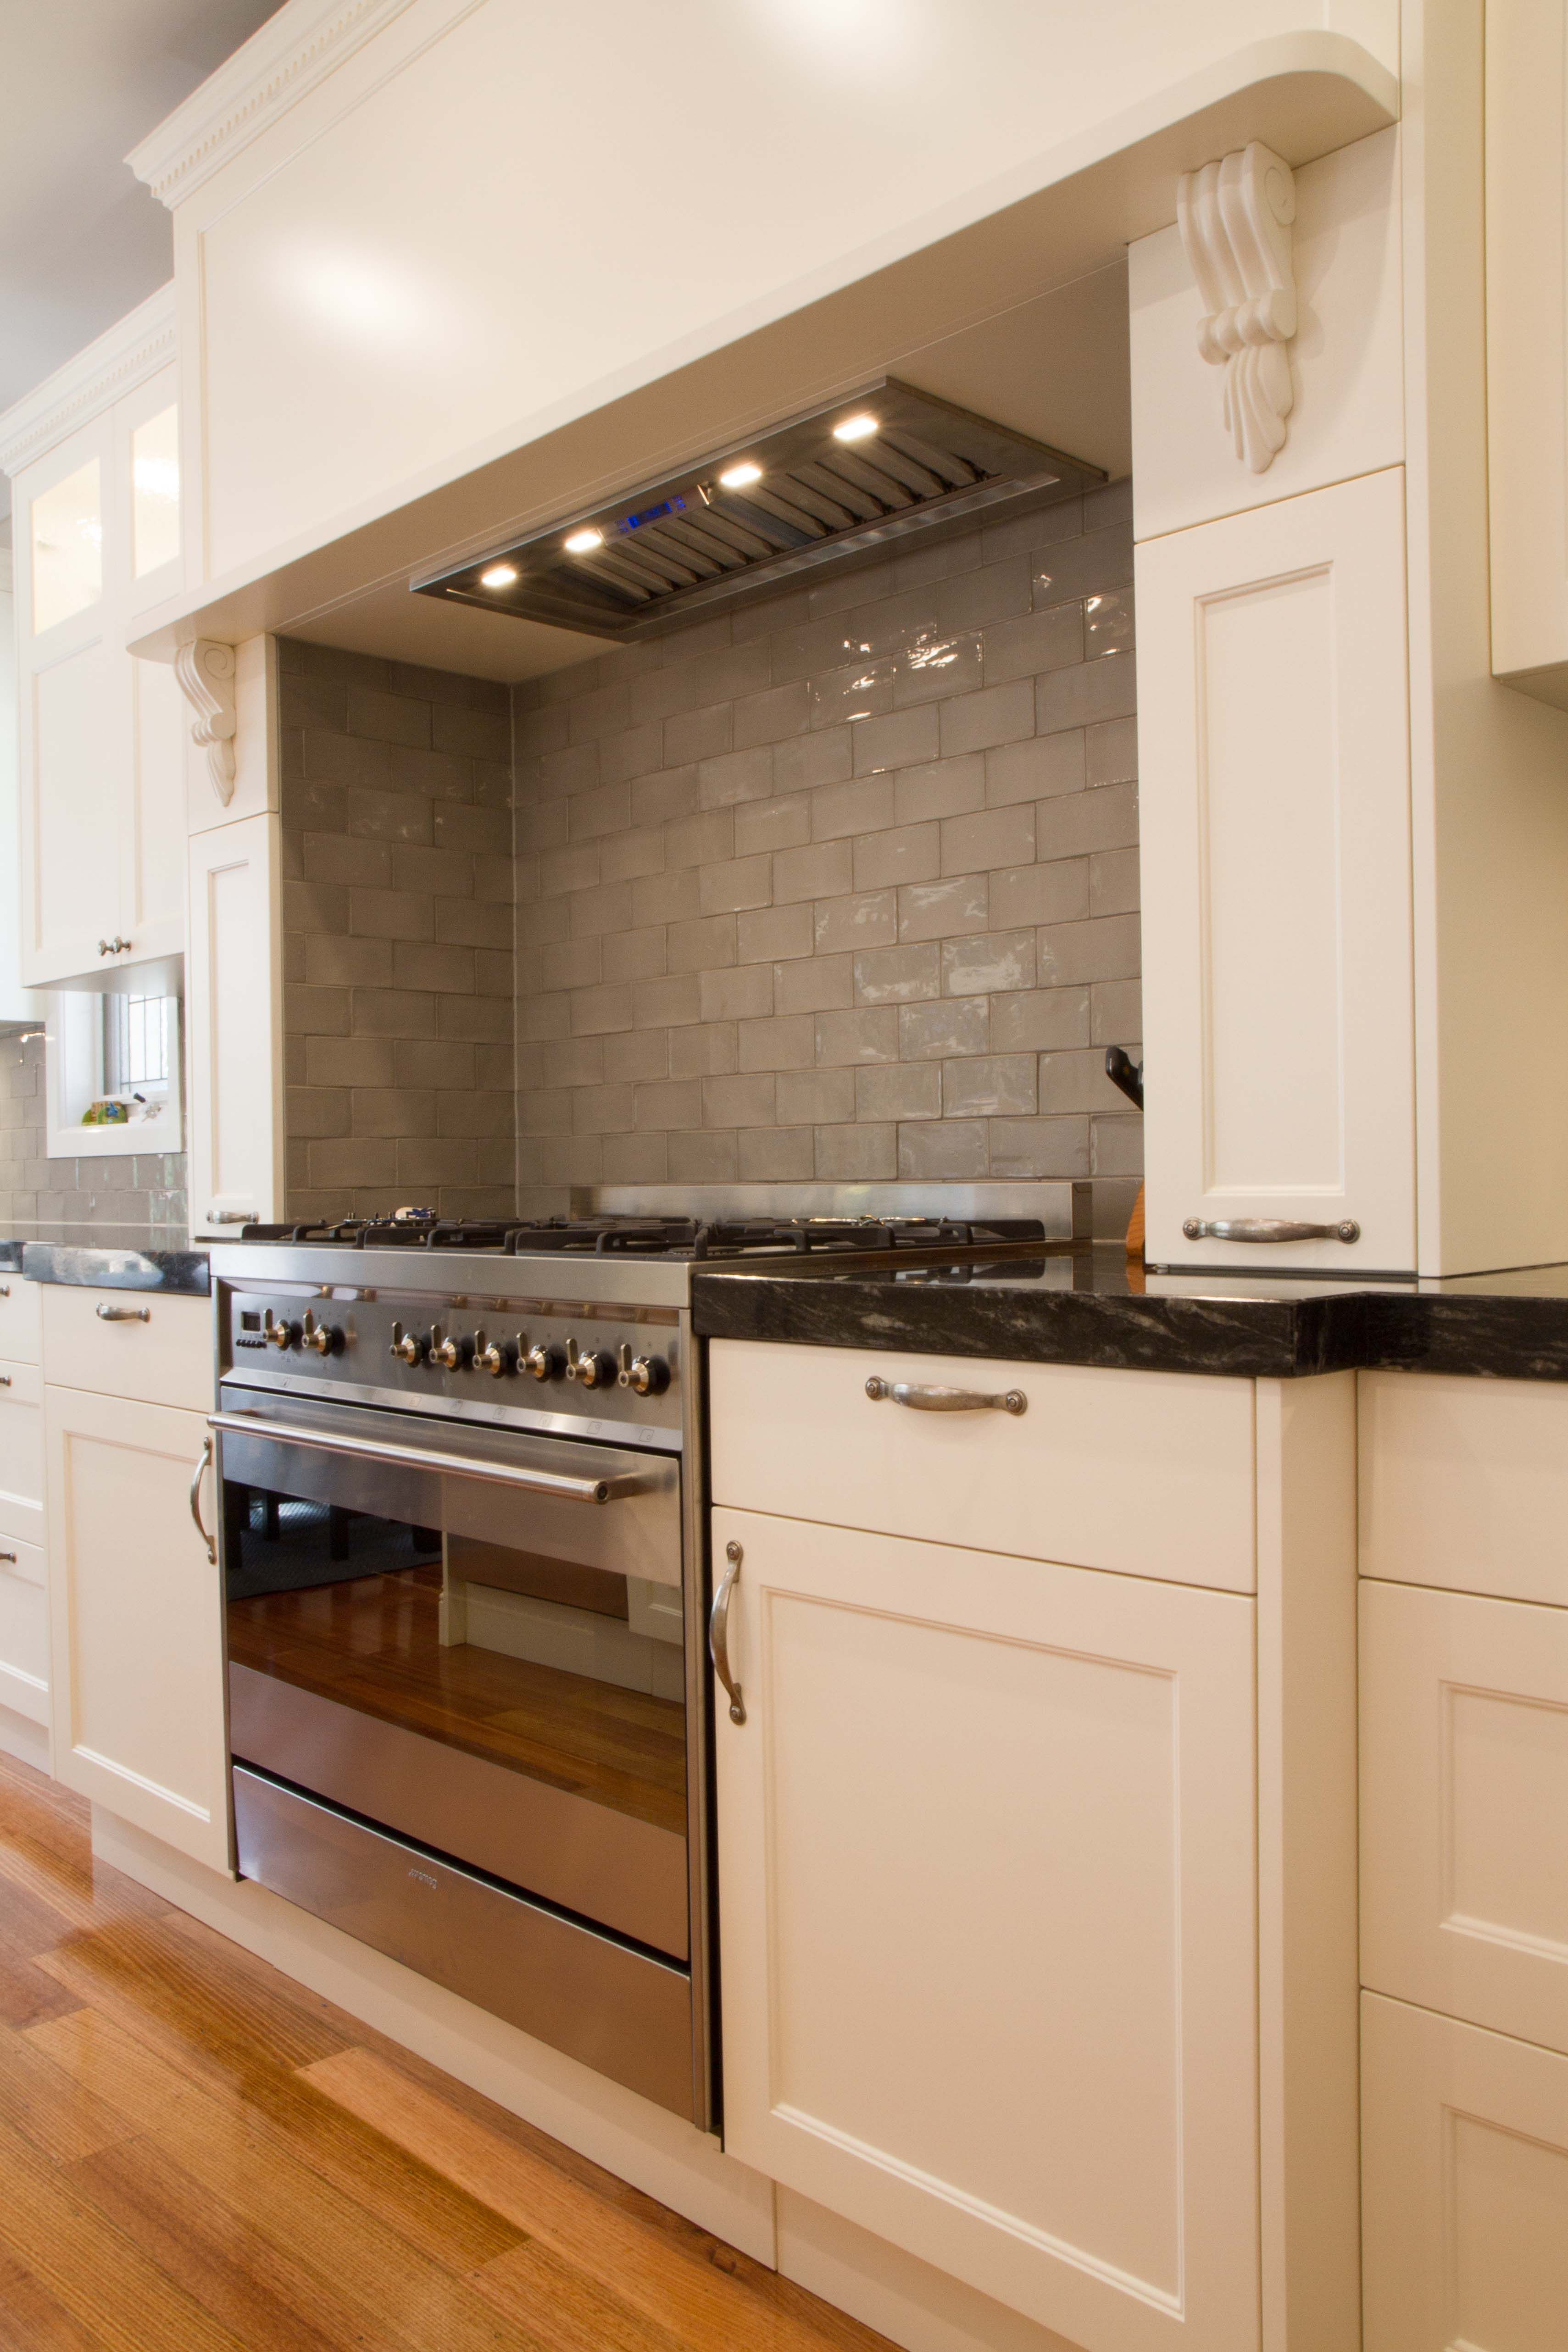 Kitchen Outlet Hob ~ Traditional kitchen with hob over freestanding oven and